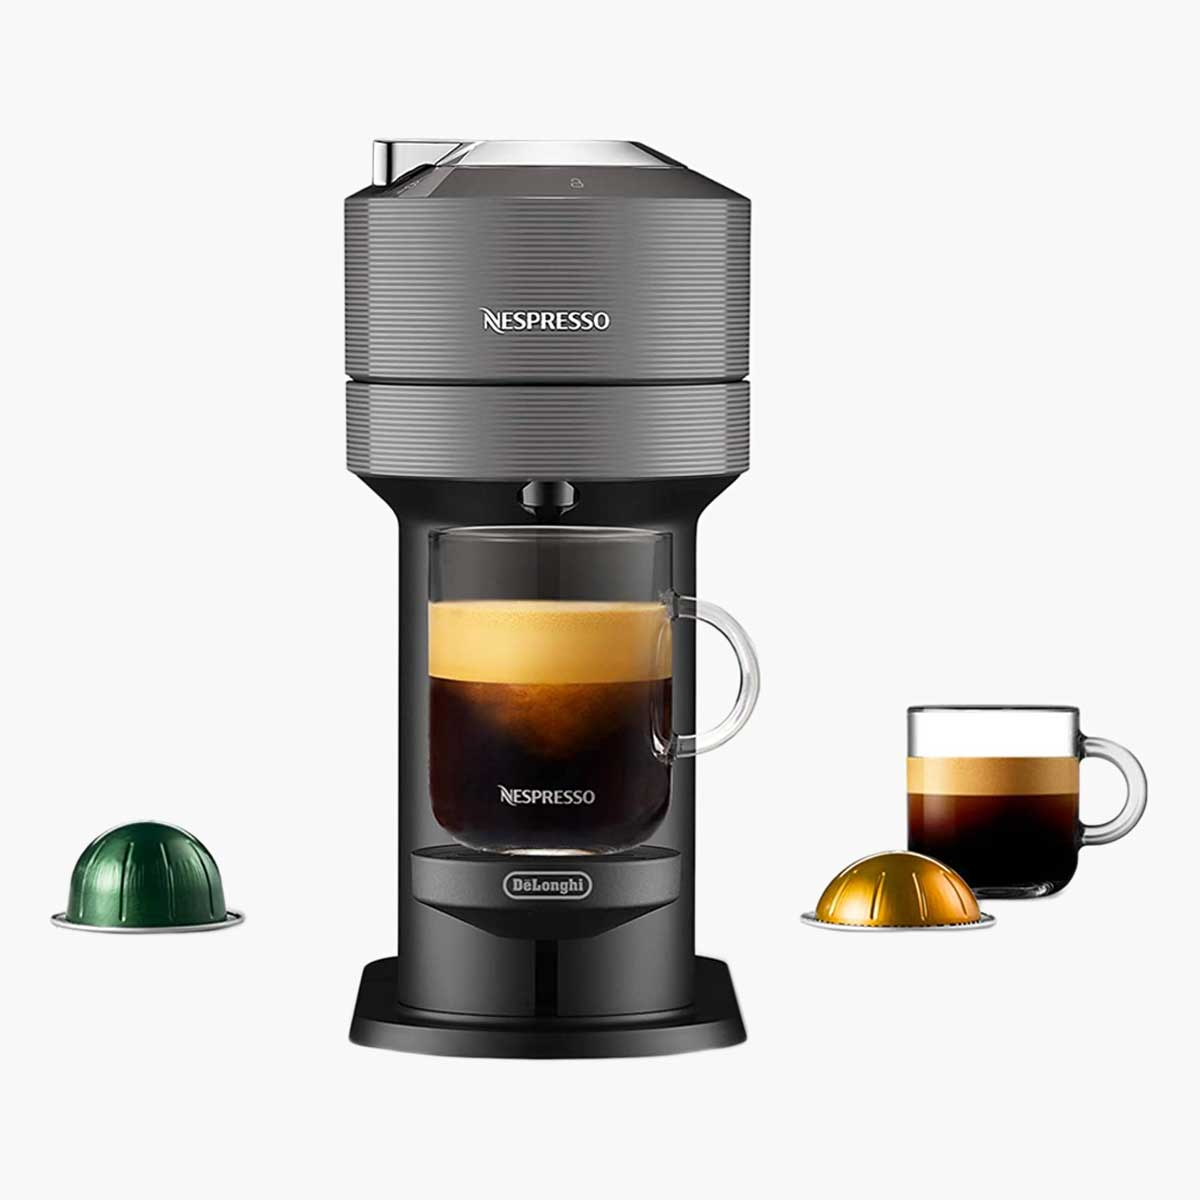 Nespresso Vertuo Espresso Maker with green and gold pods